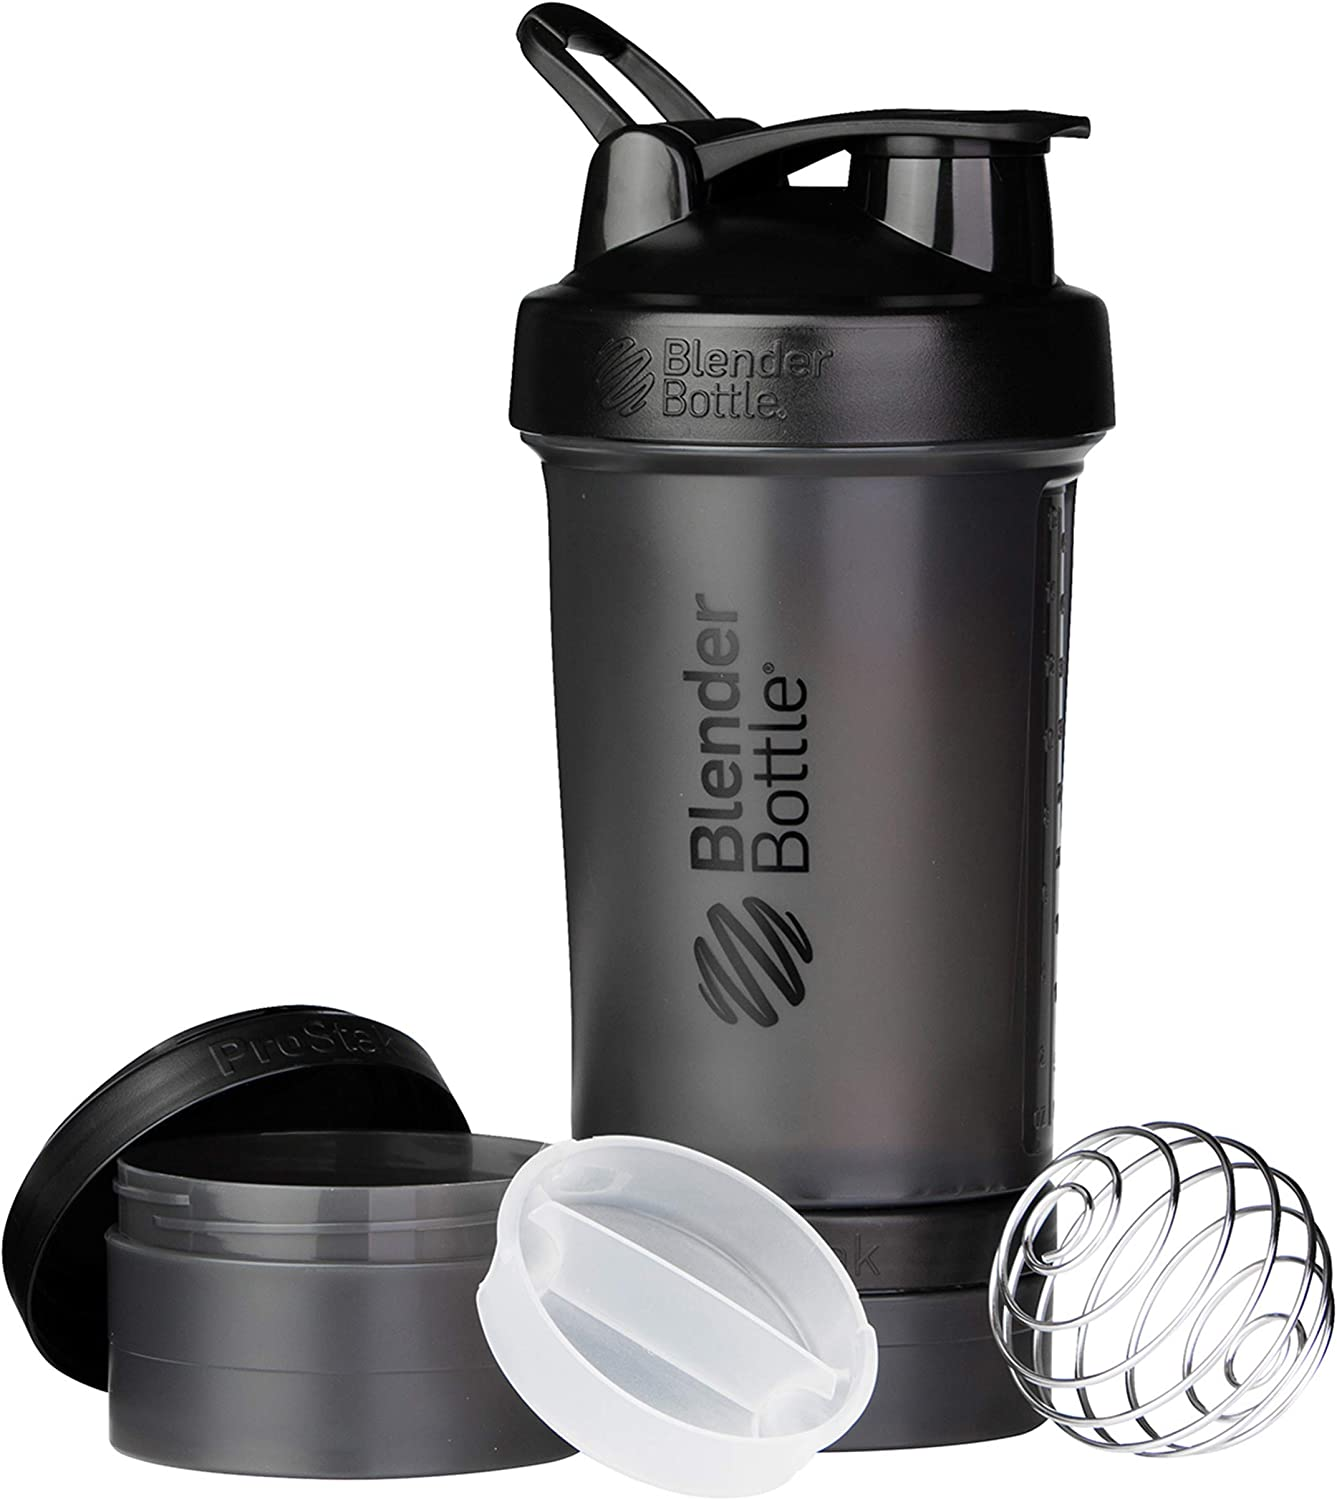 Blender Bottle ProStak System with 450ml Bottle and Twist n' Lock Storage, 22oz, Black